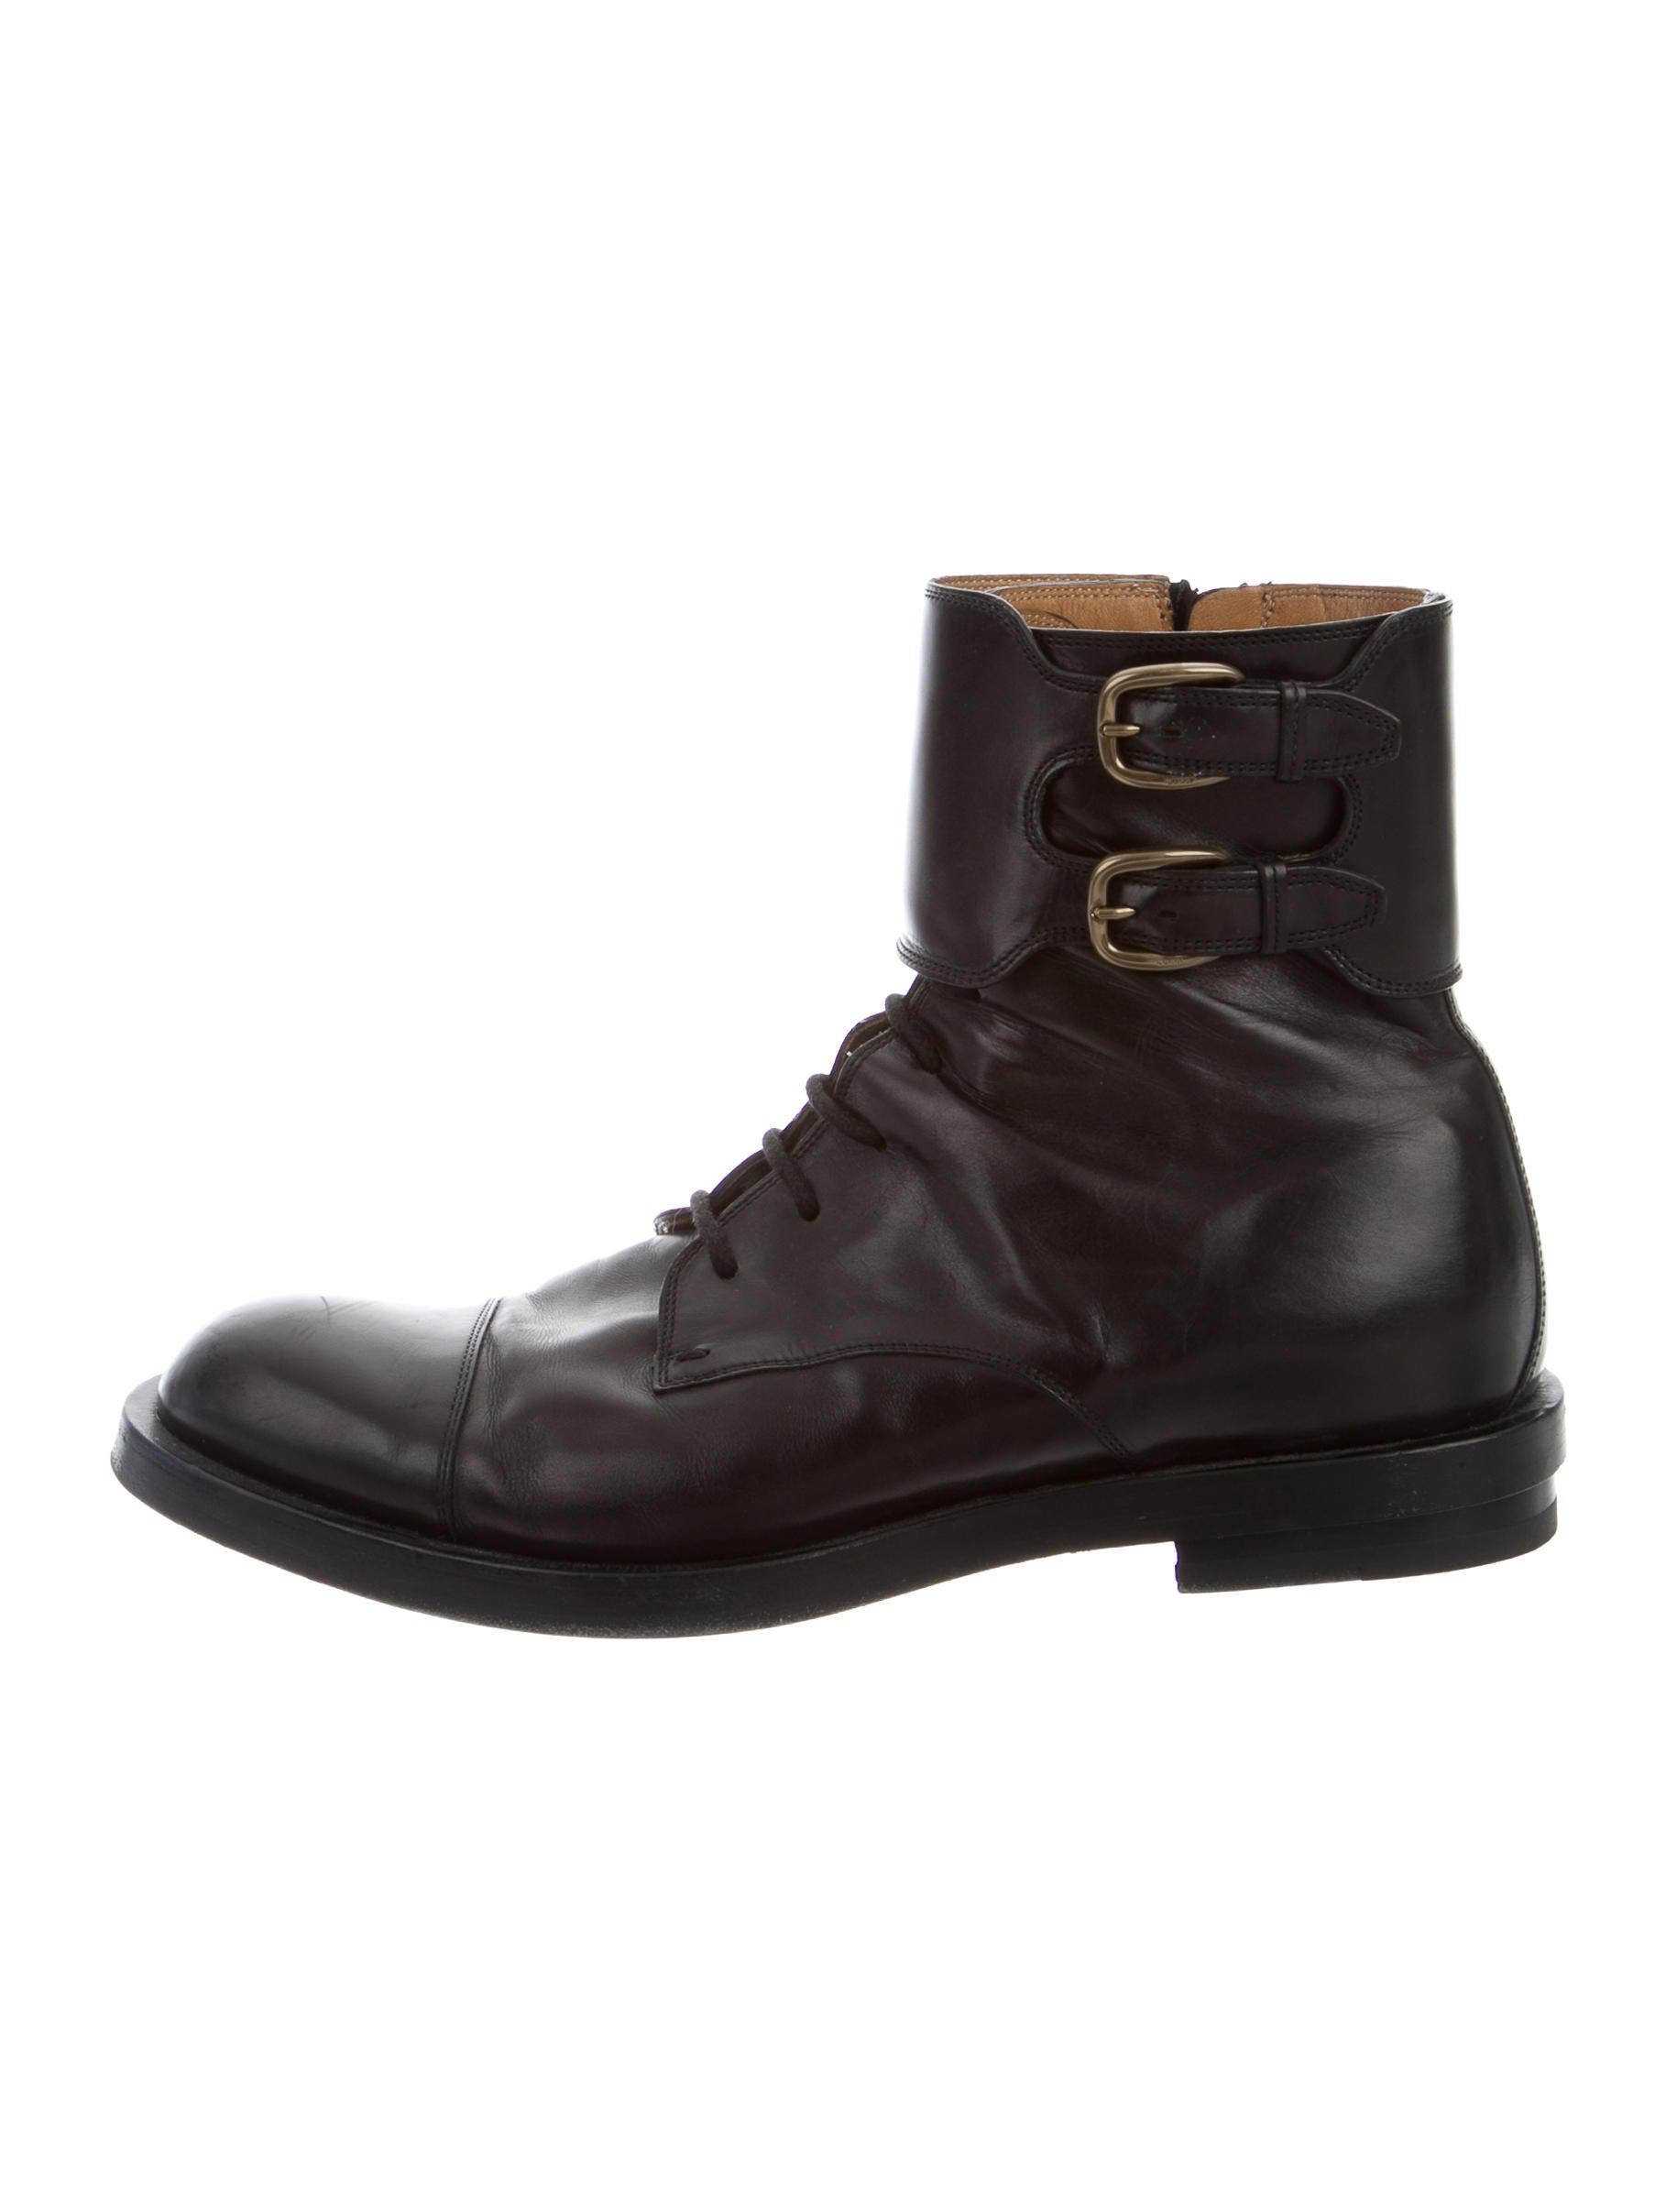 gucci leather combat boots shoes guc116459 the realreal